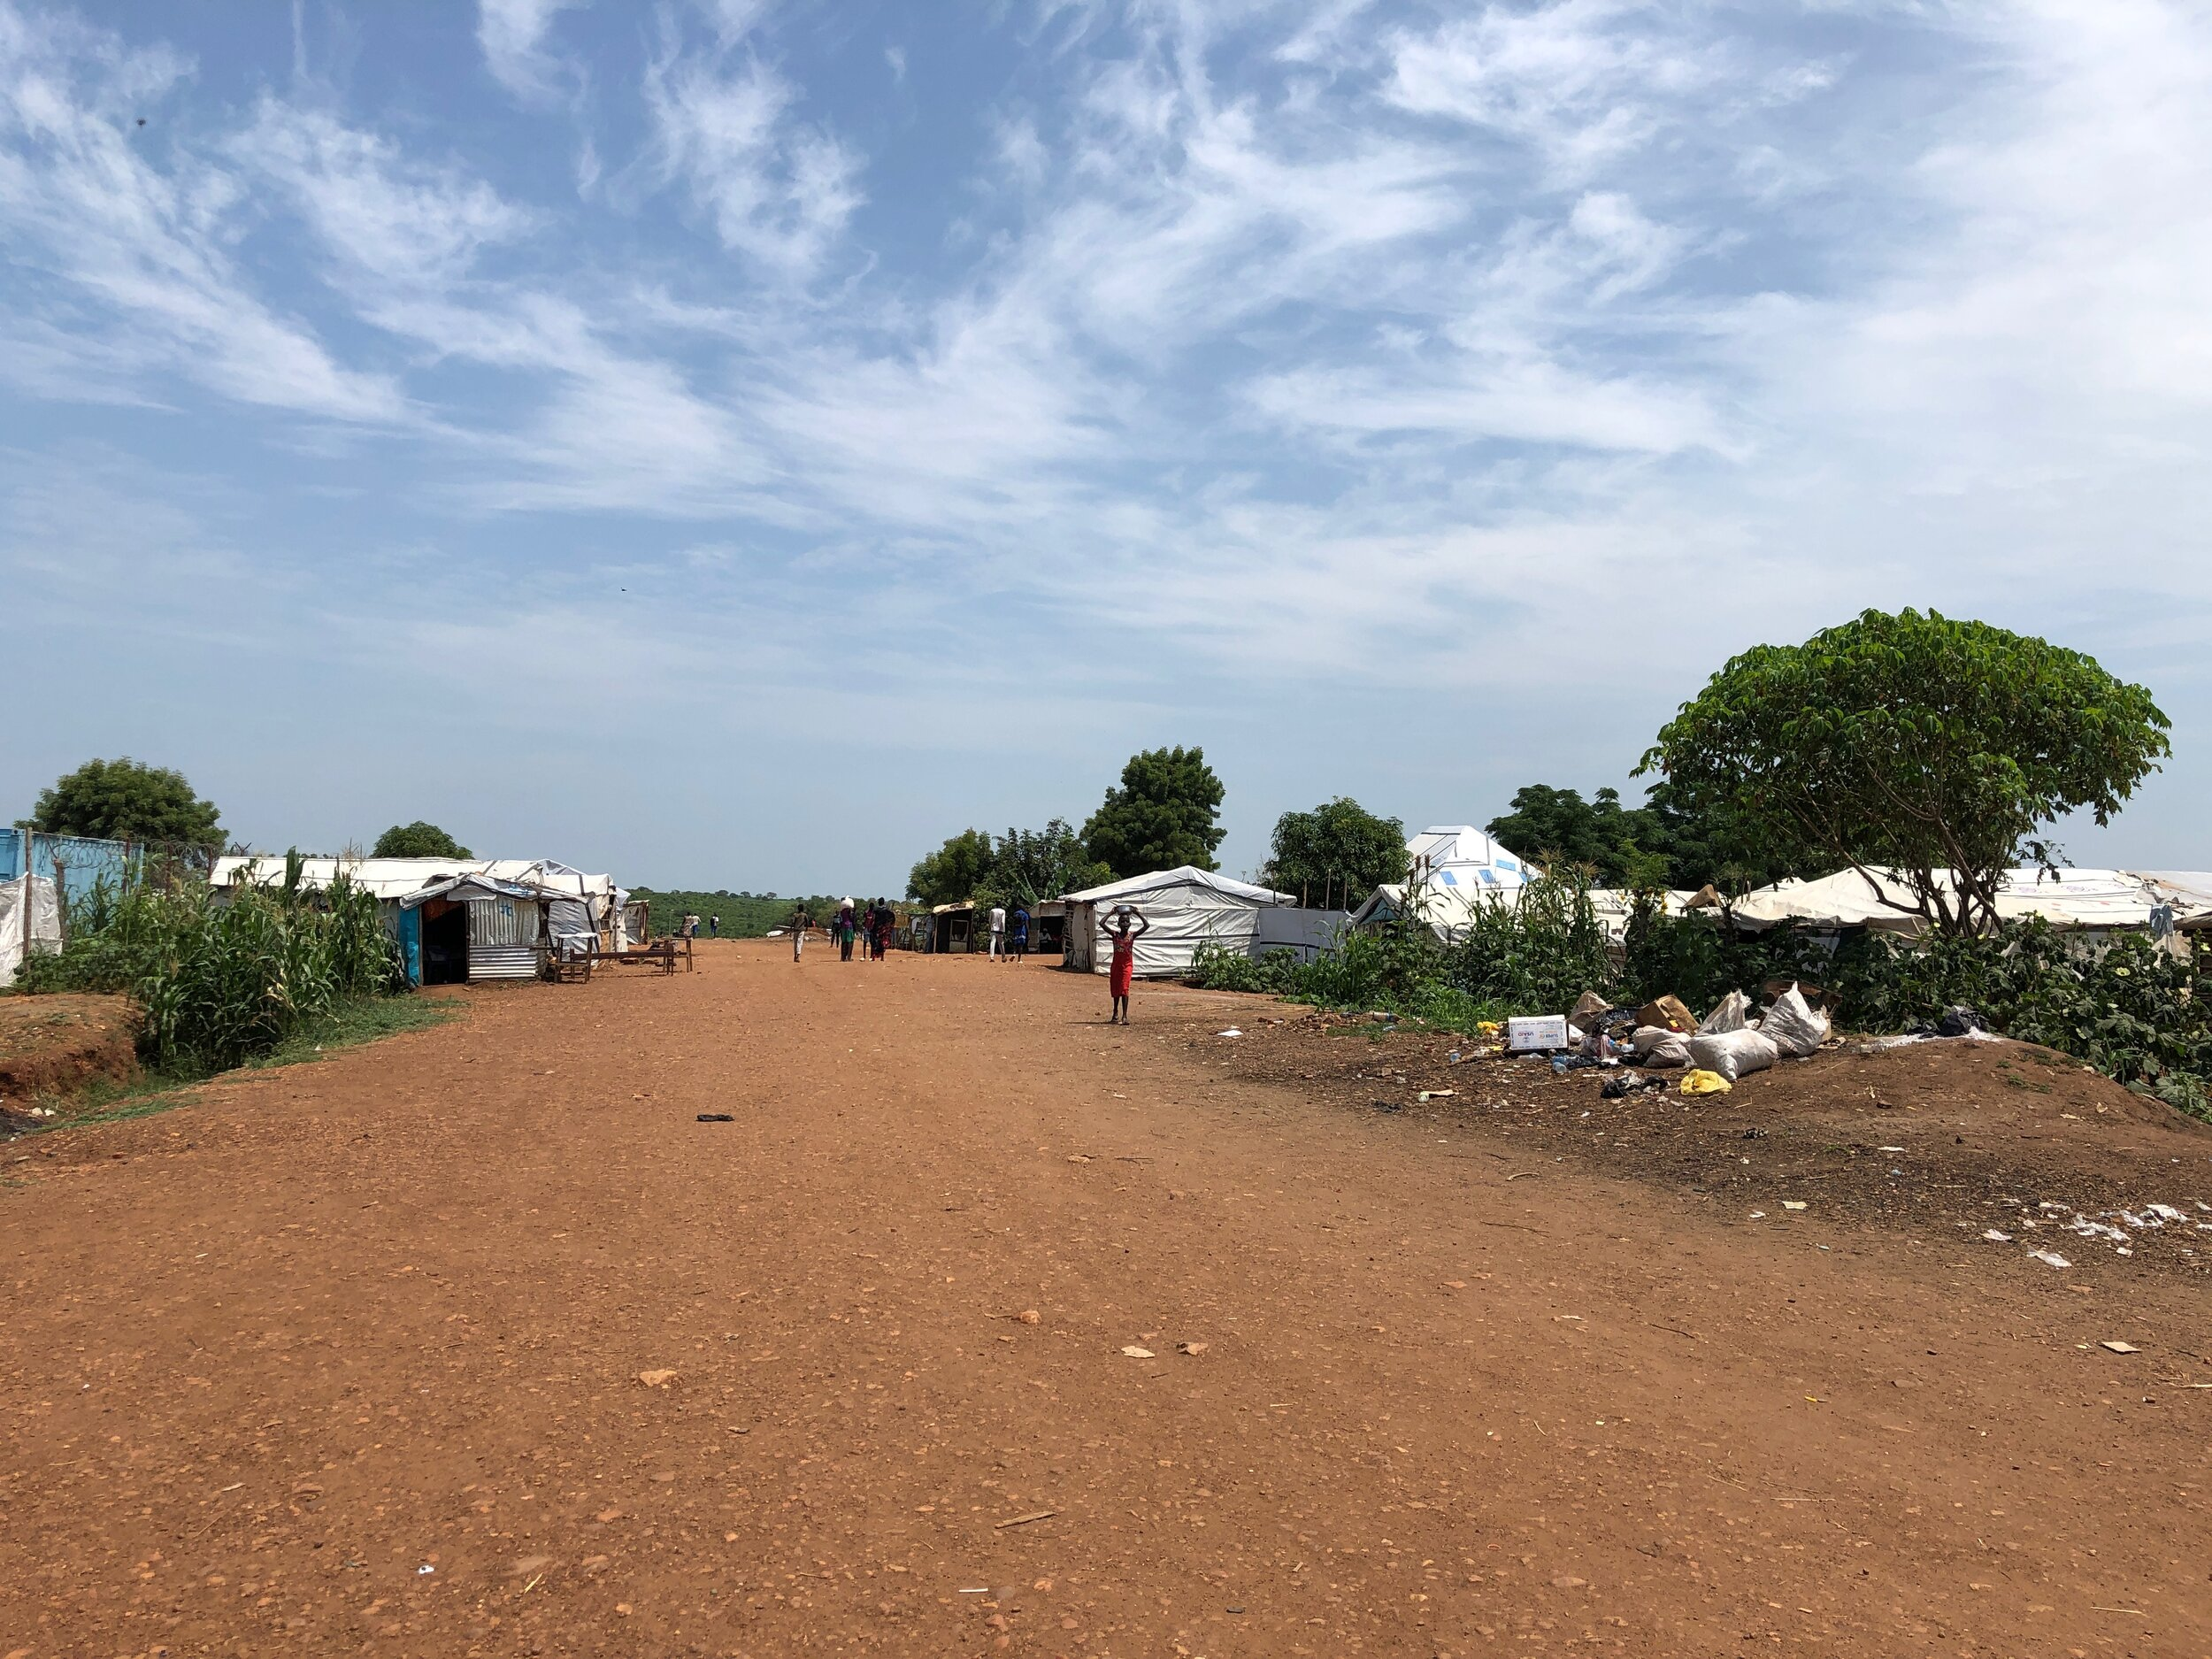 About 25,000 internally displaced people (IDPs) live in POC 3 in Juba. POCs are surrounded by fences and protected by UN Mission in South Sudan (UNMISS) peacekeeping troops.